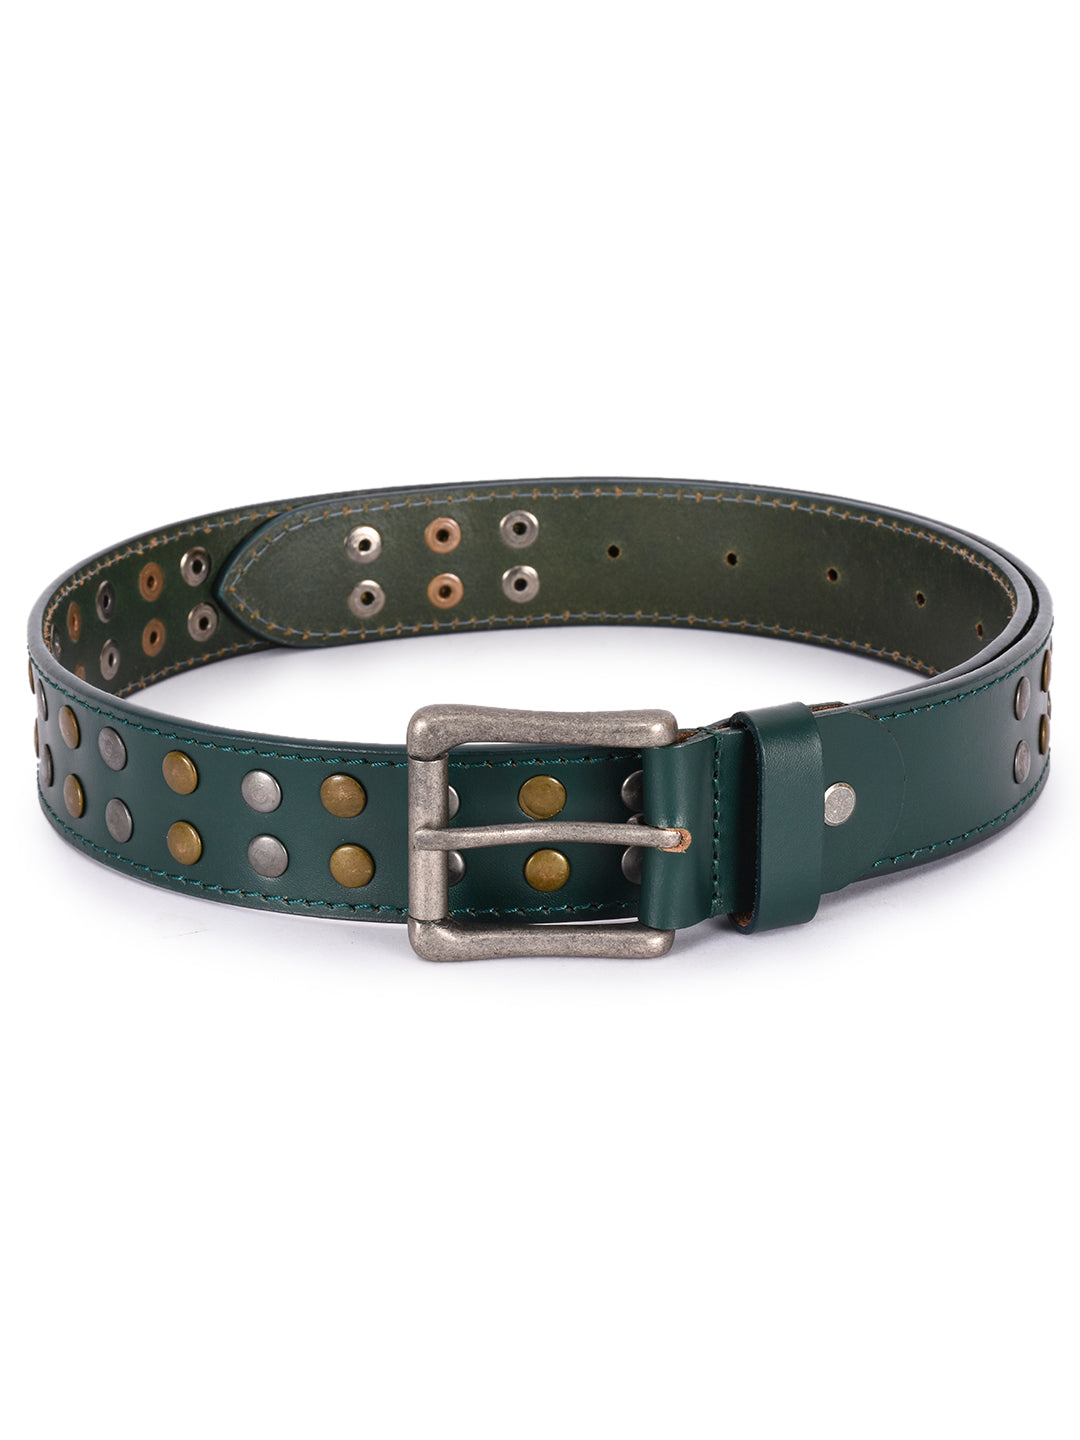 Leather Belt - PRMB1436